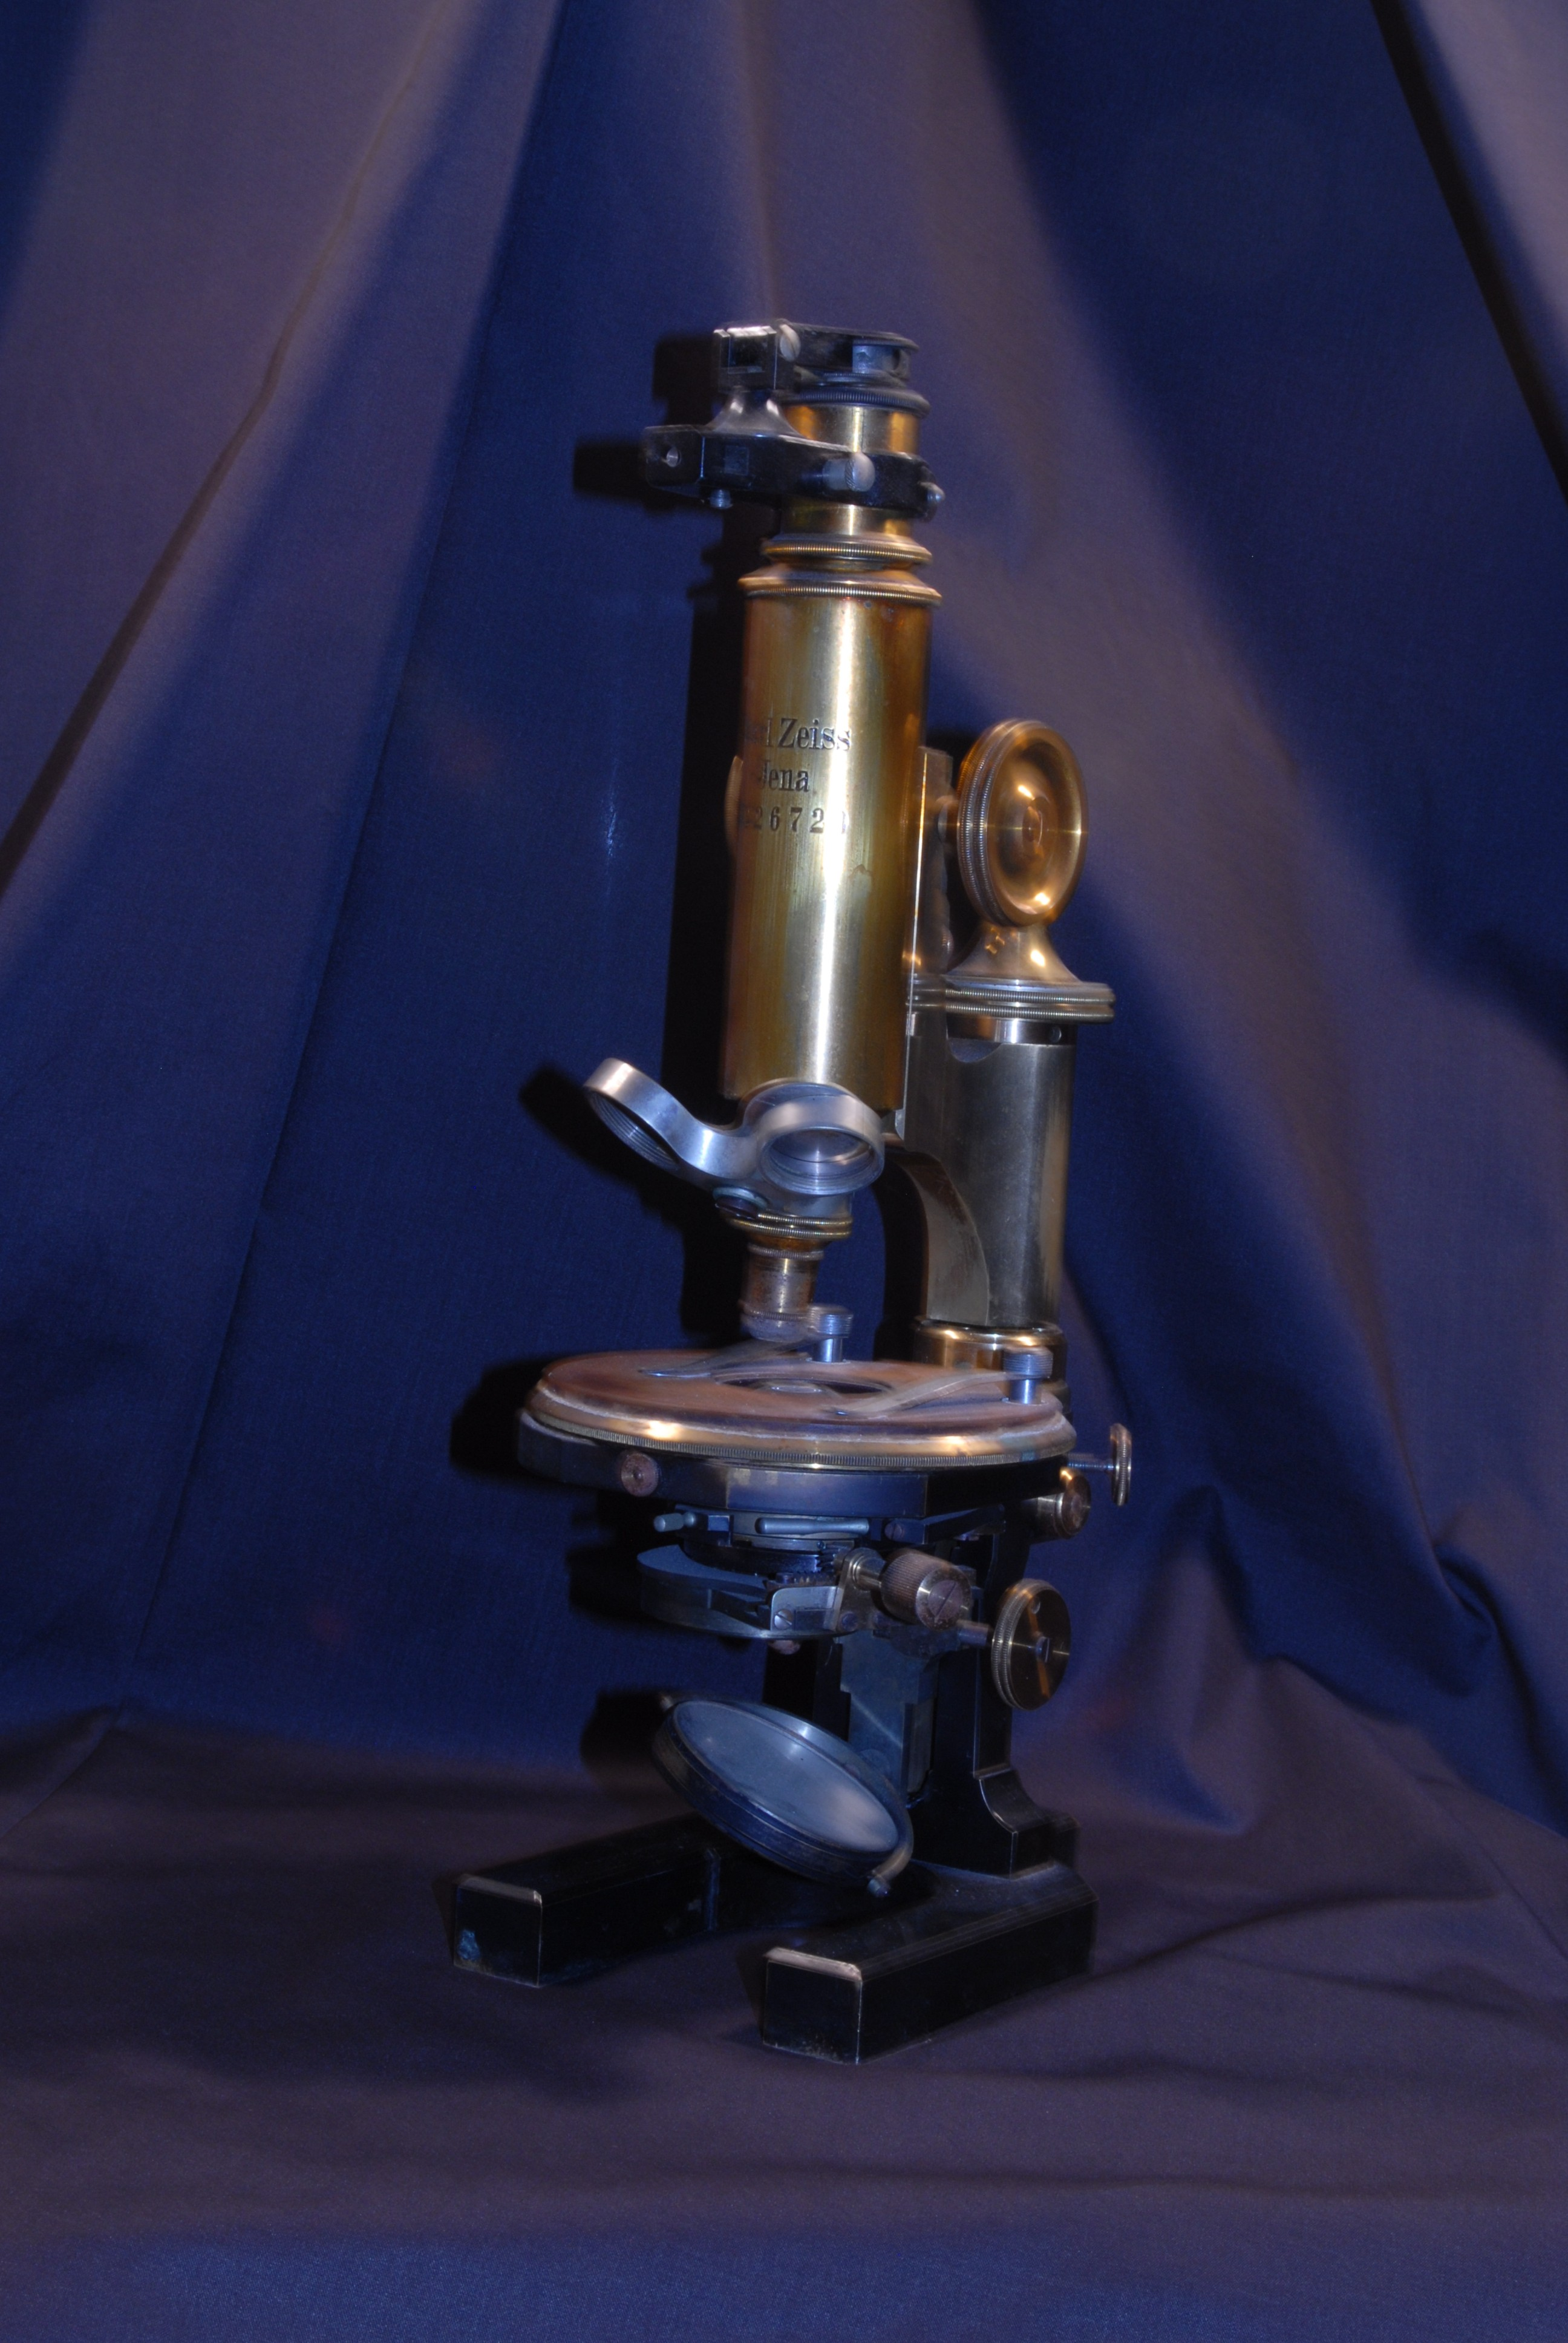 Zeiss Microscope donated to the college for the 1889-1890 school Year.